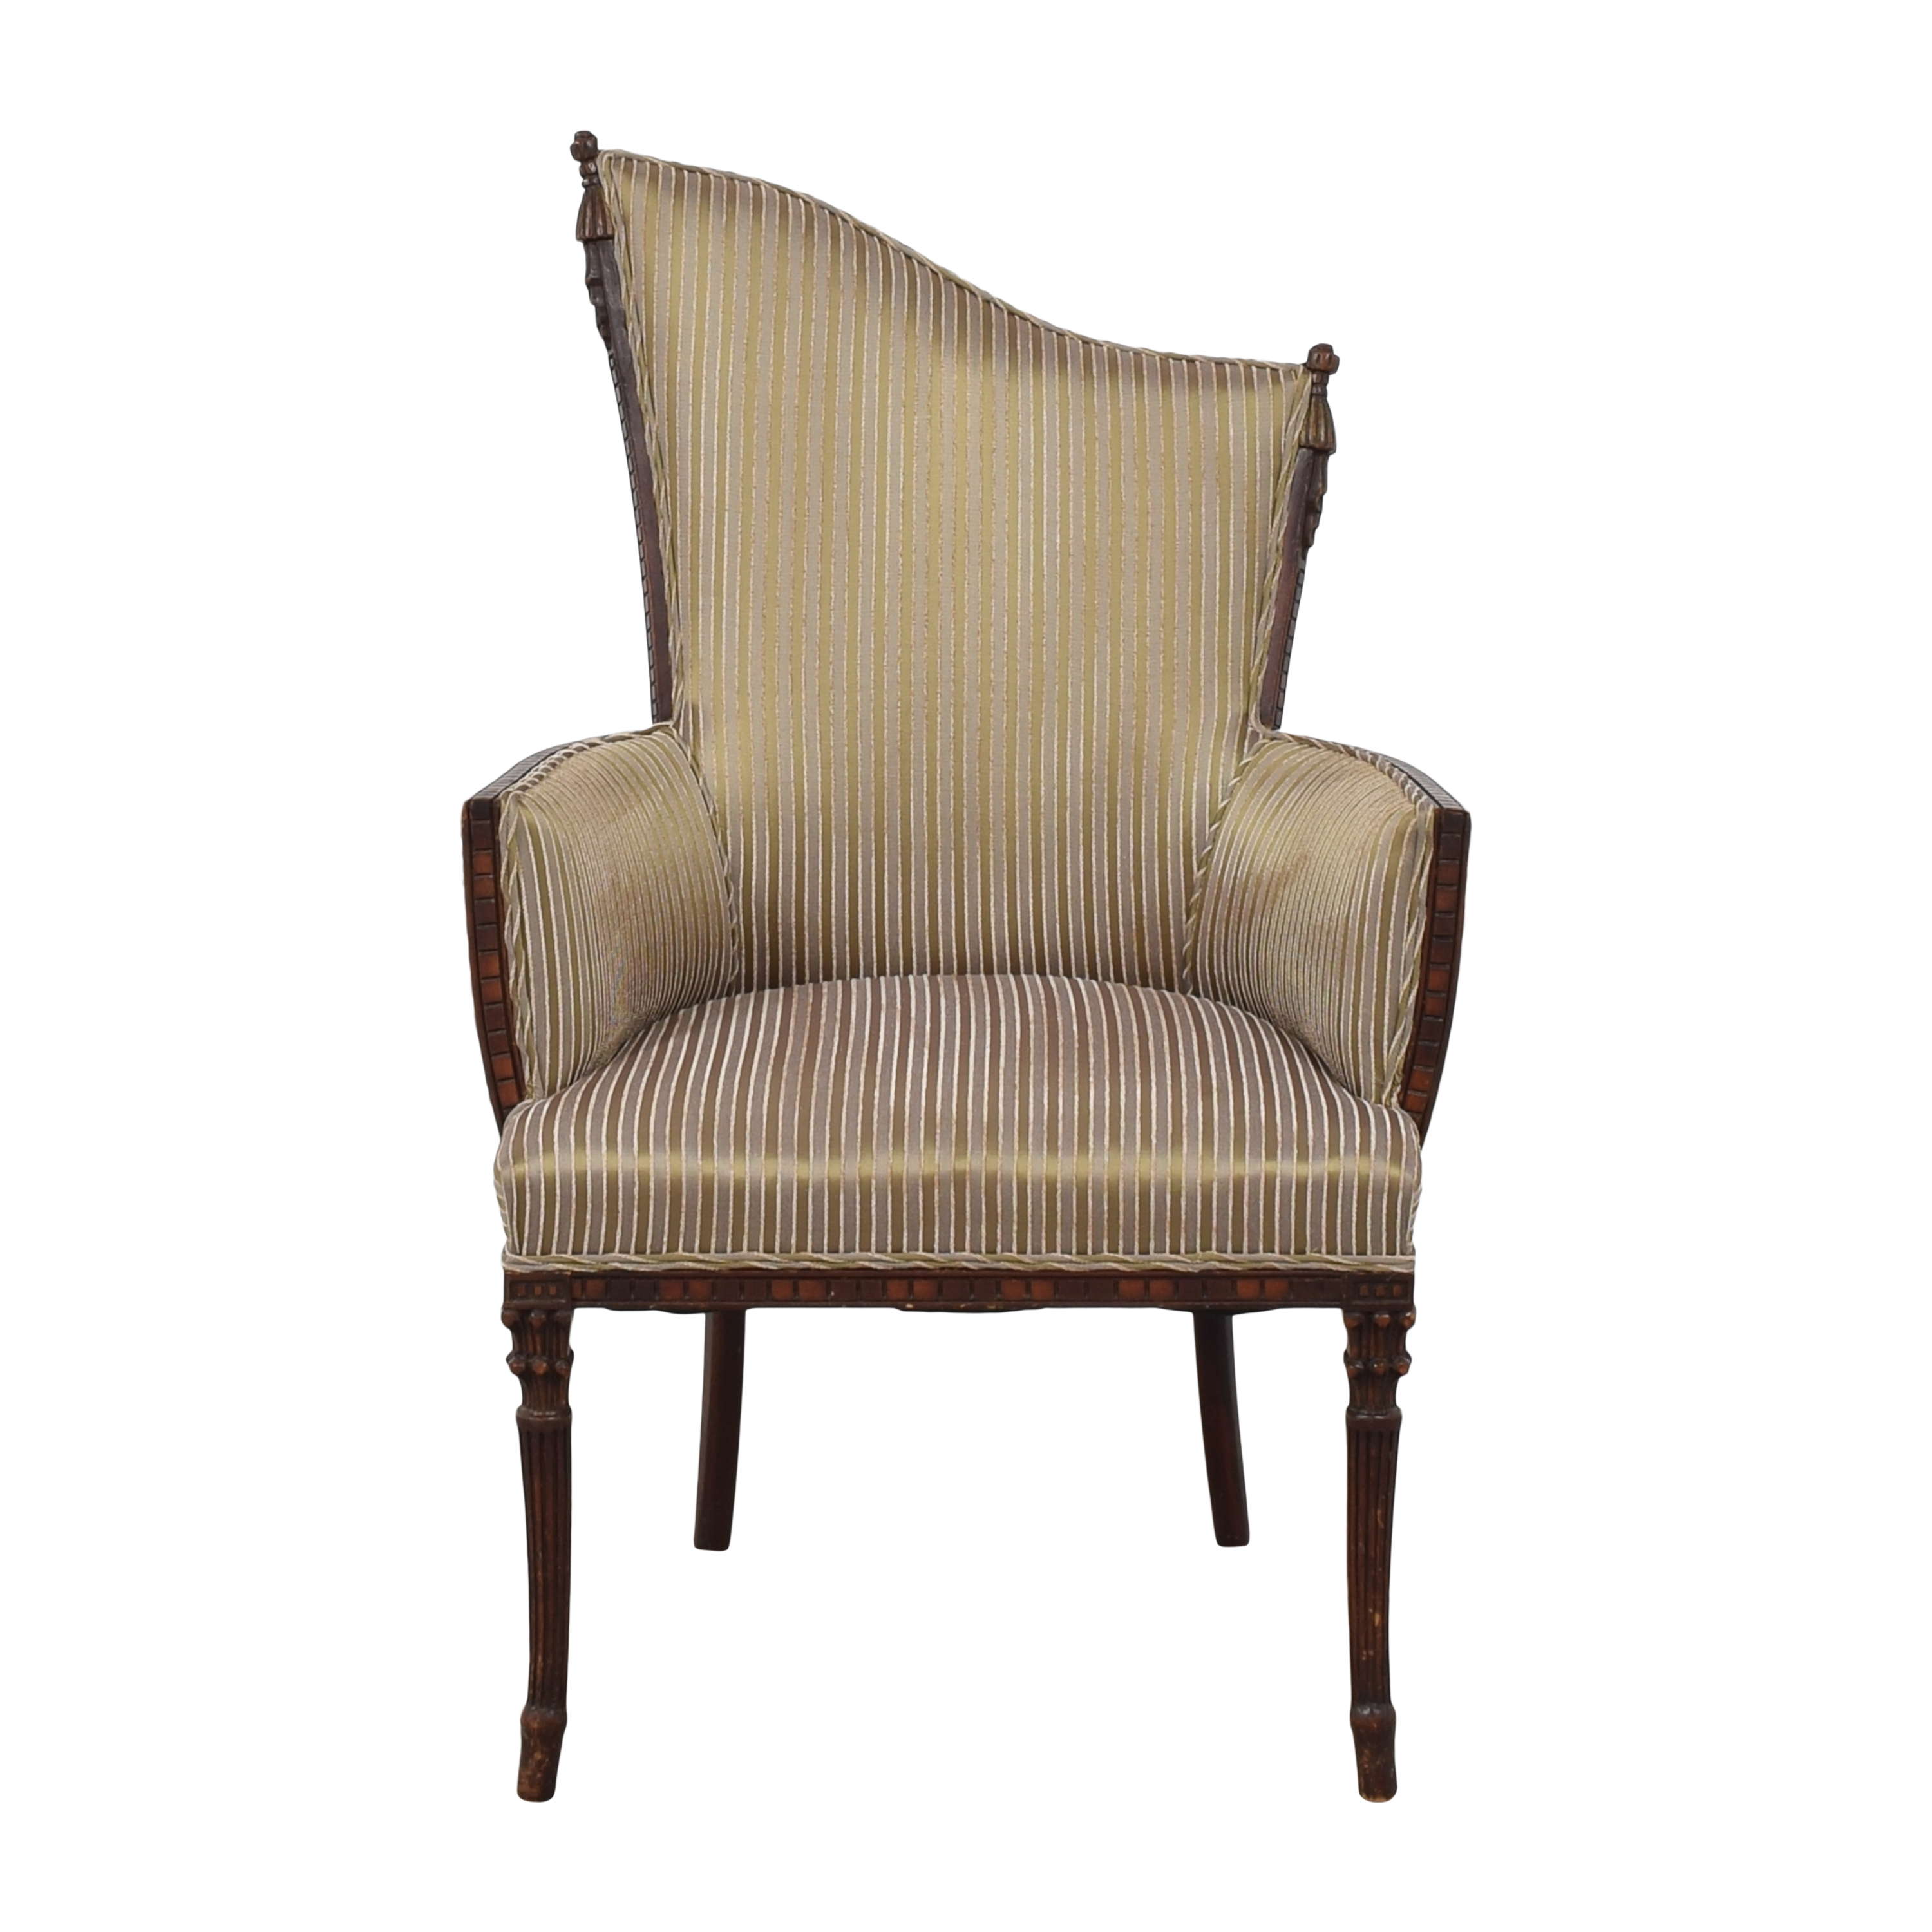 Custom Upholstered Art Deco-Style Arm Chair nyc